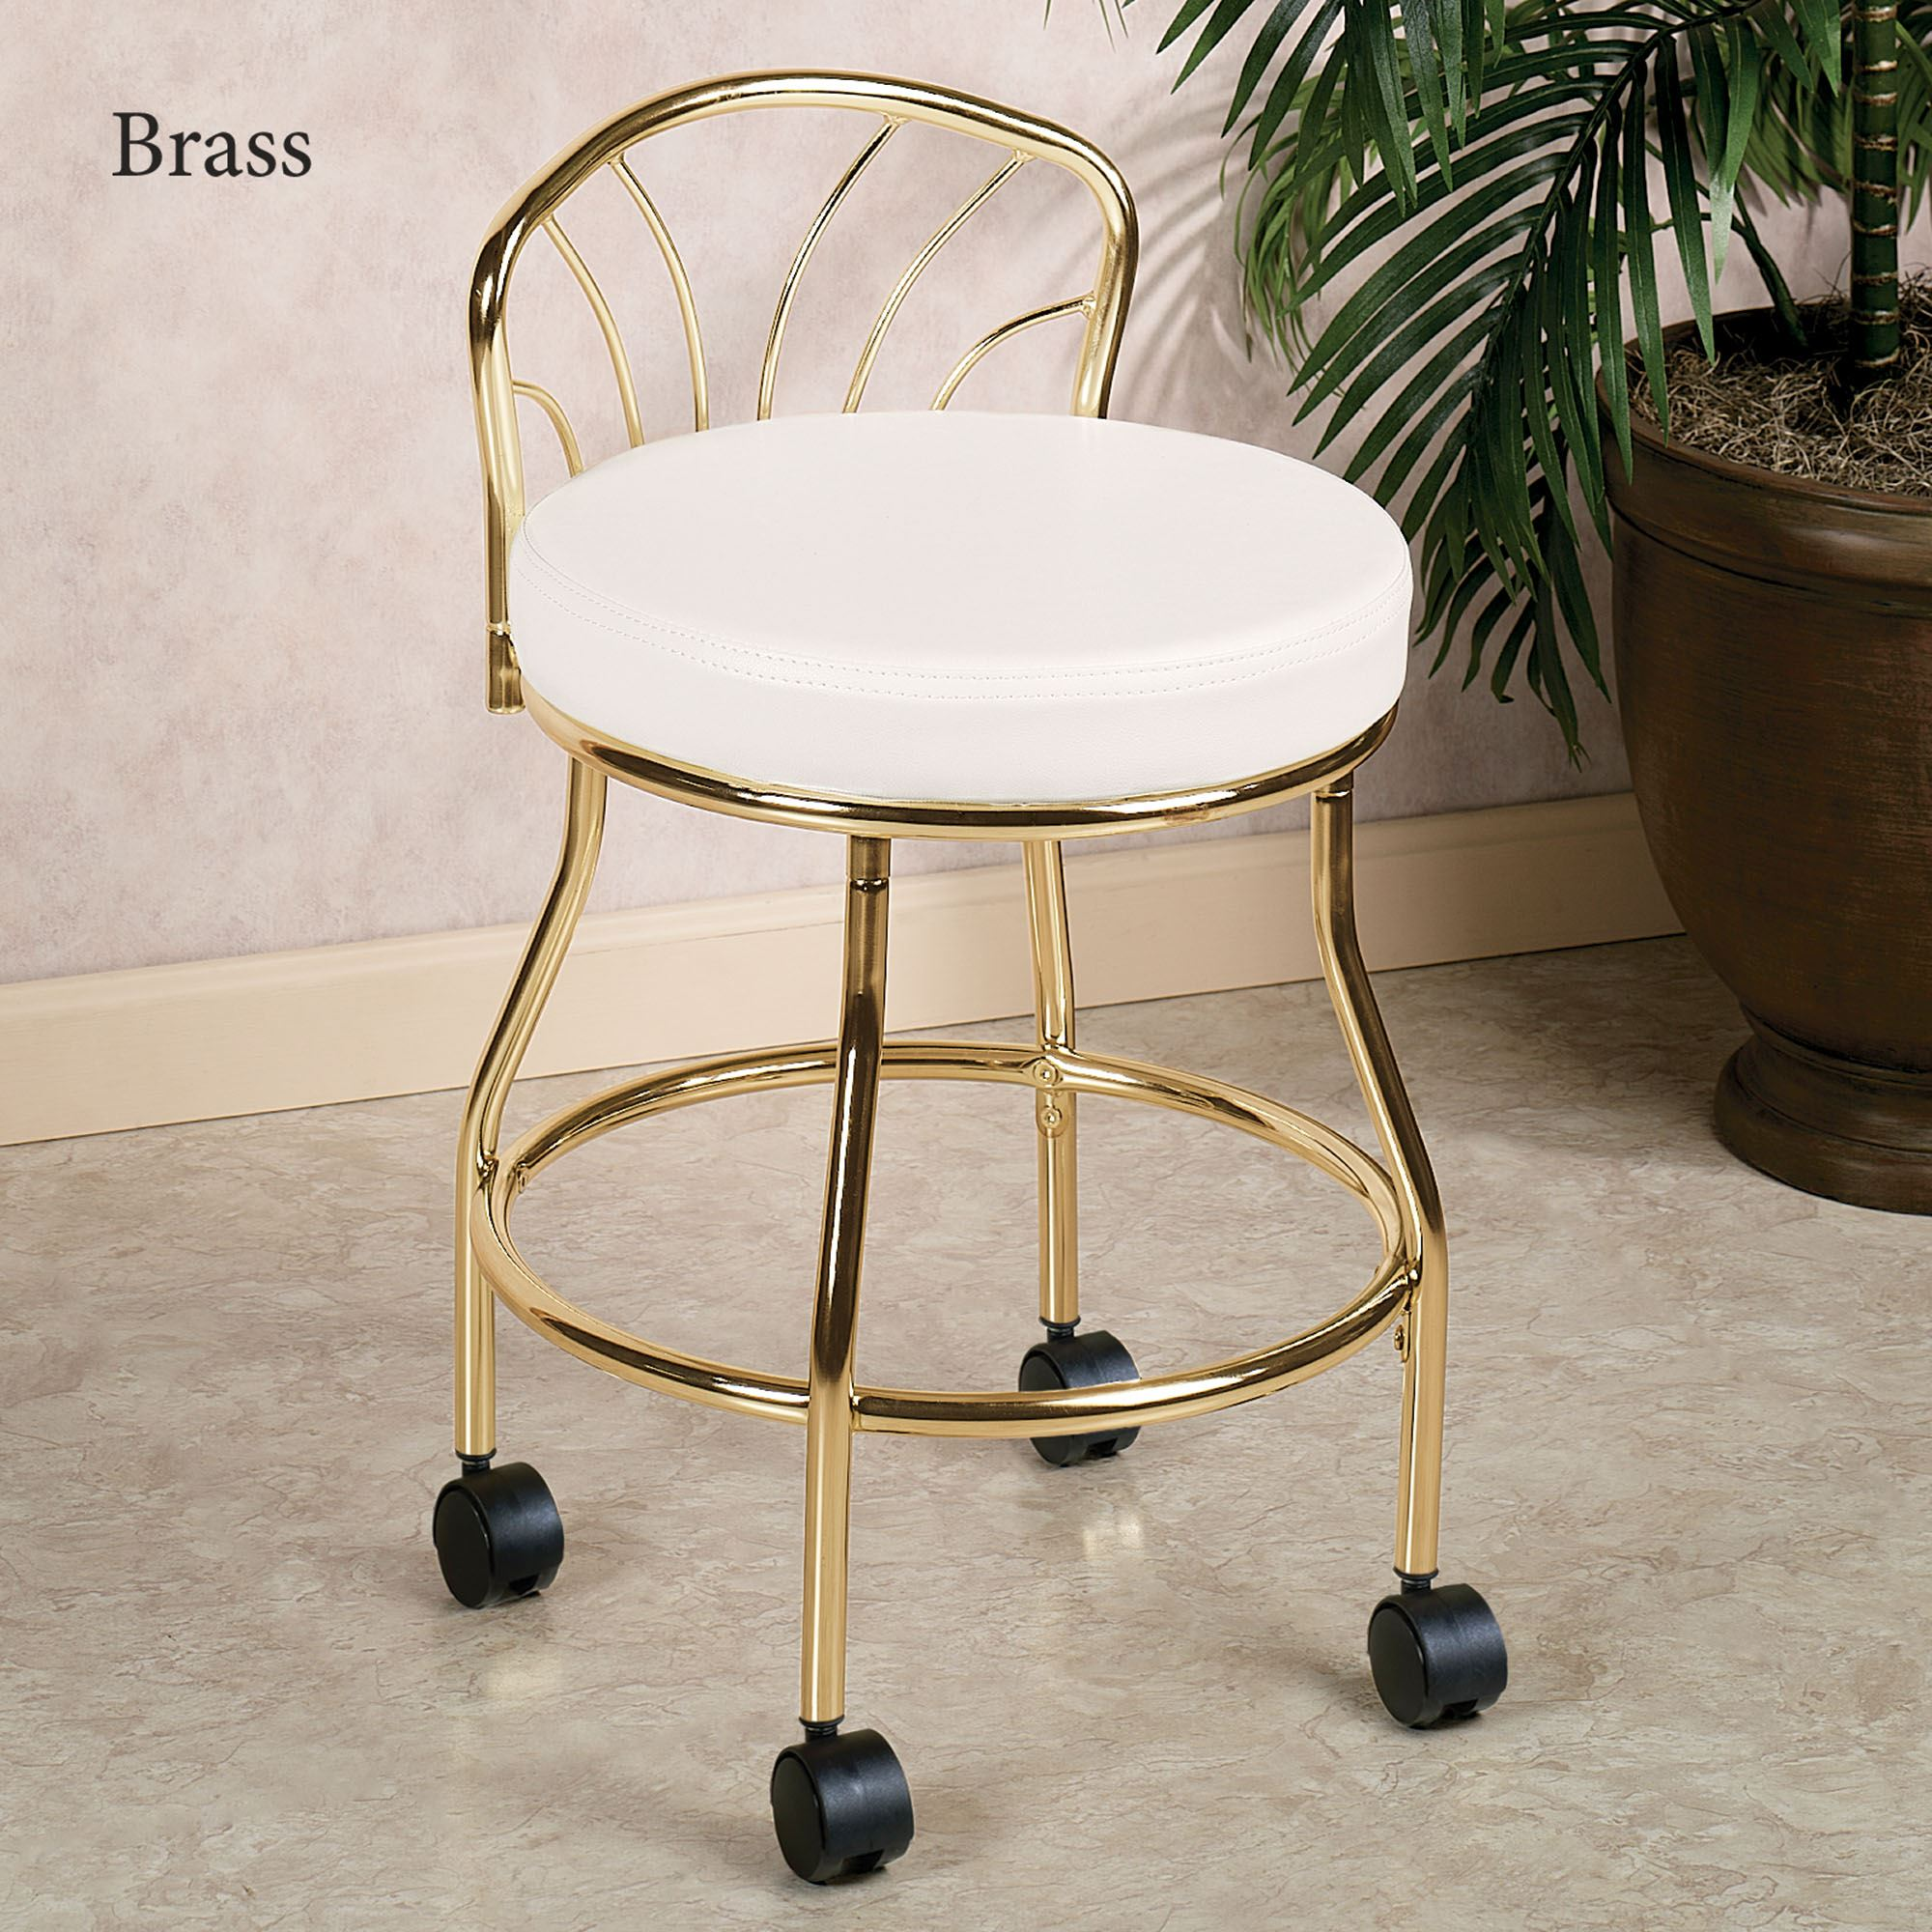 Flare Back Metallic Finish Vanity Chair With Casters - Bathroom vanity chairs with backs